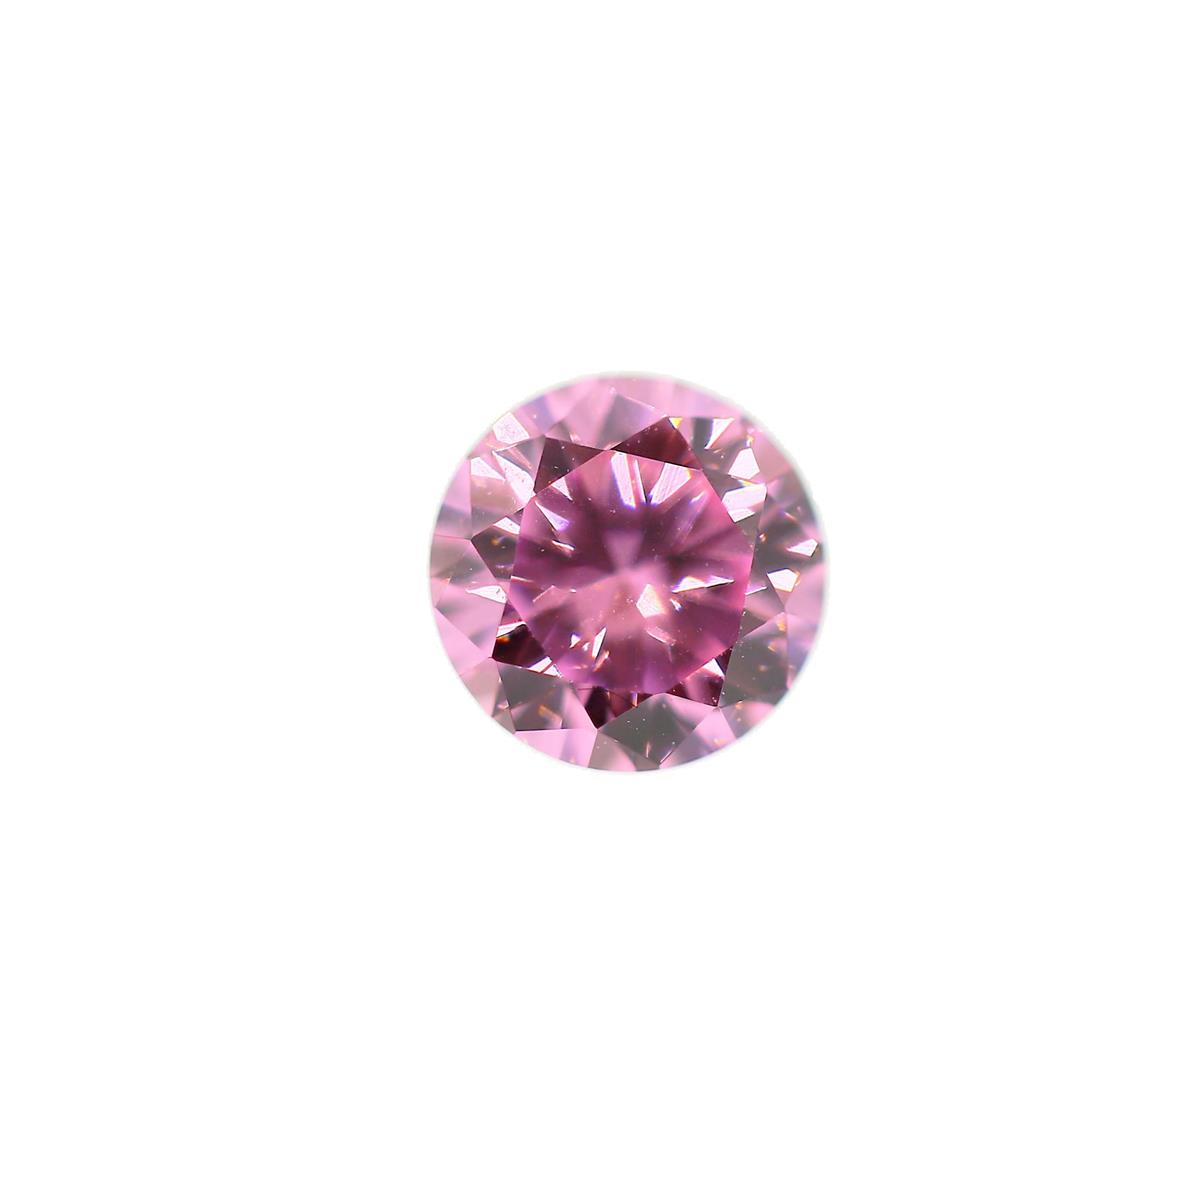 Cubic Zirconia Pink Ice 5.5mm